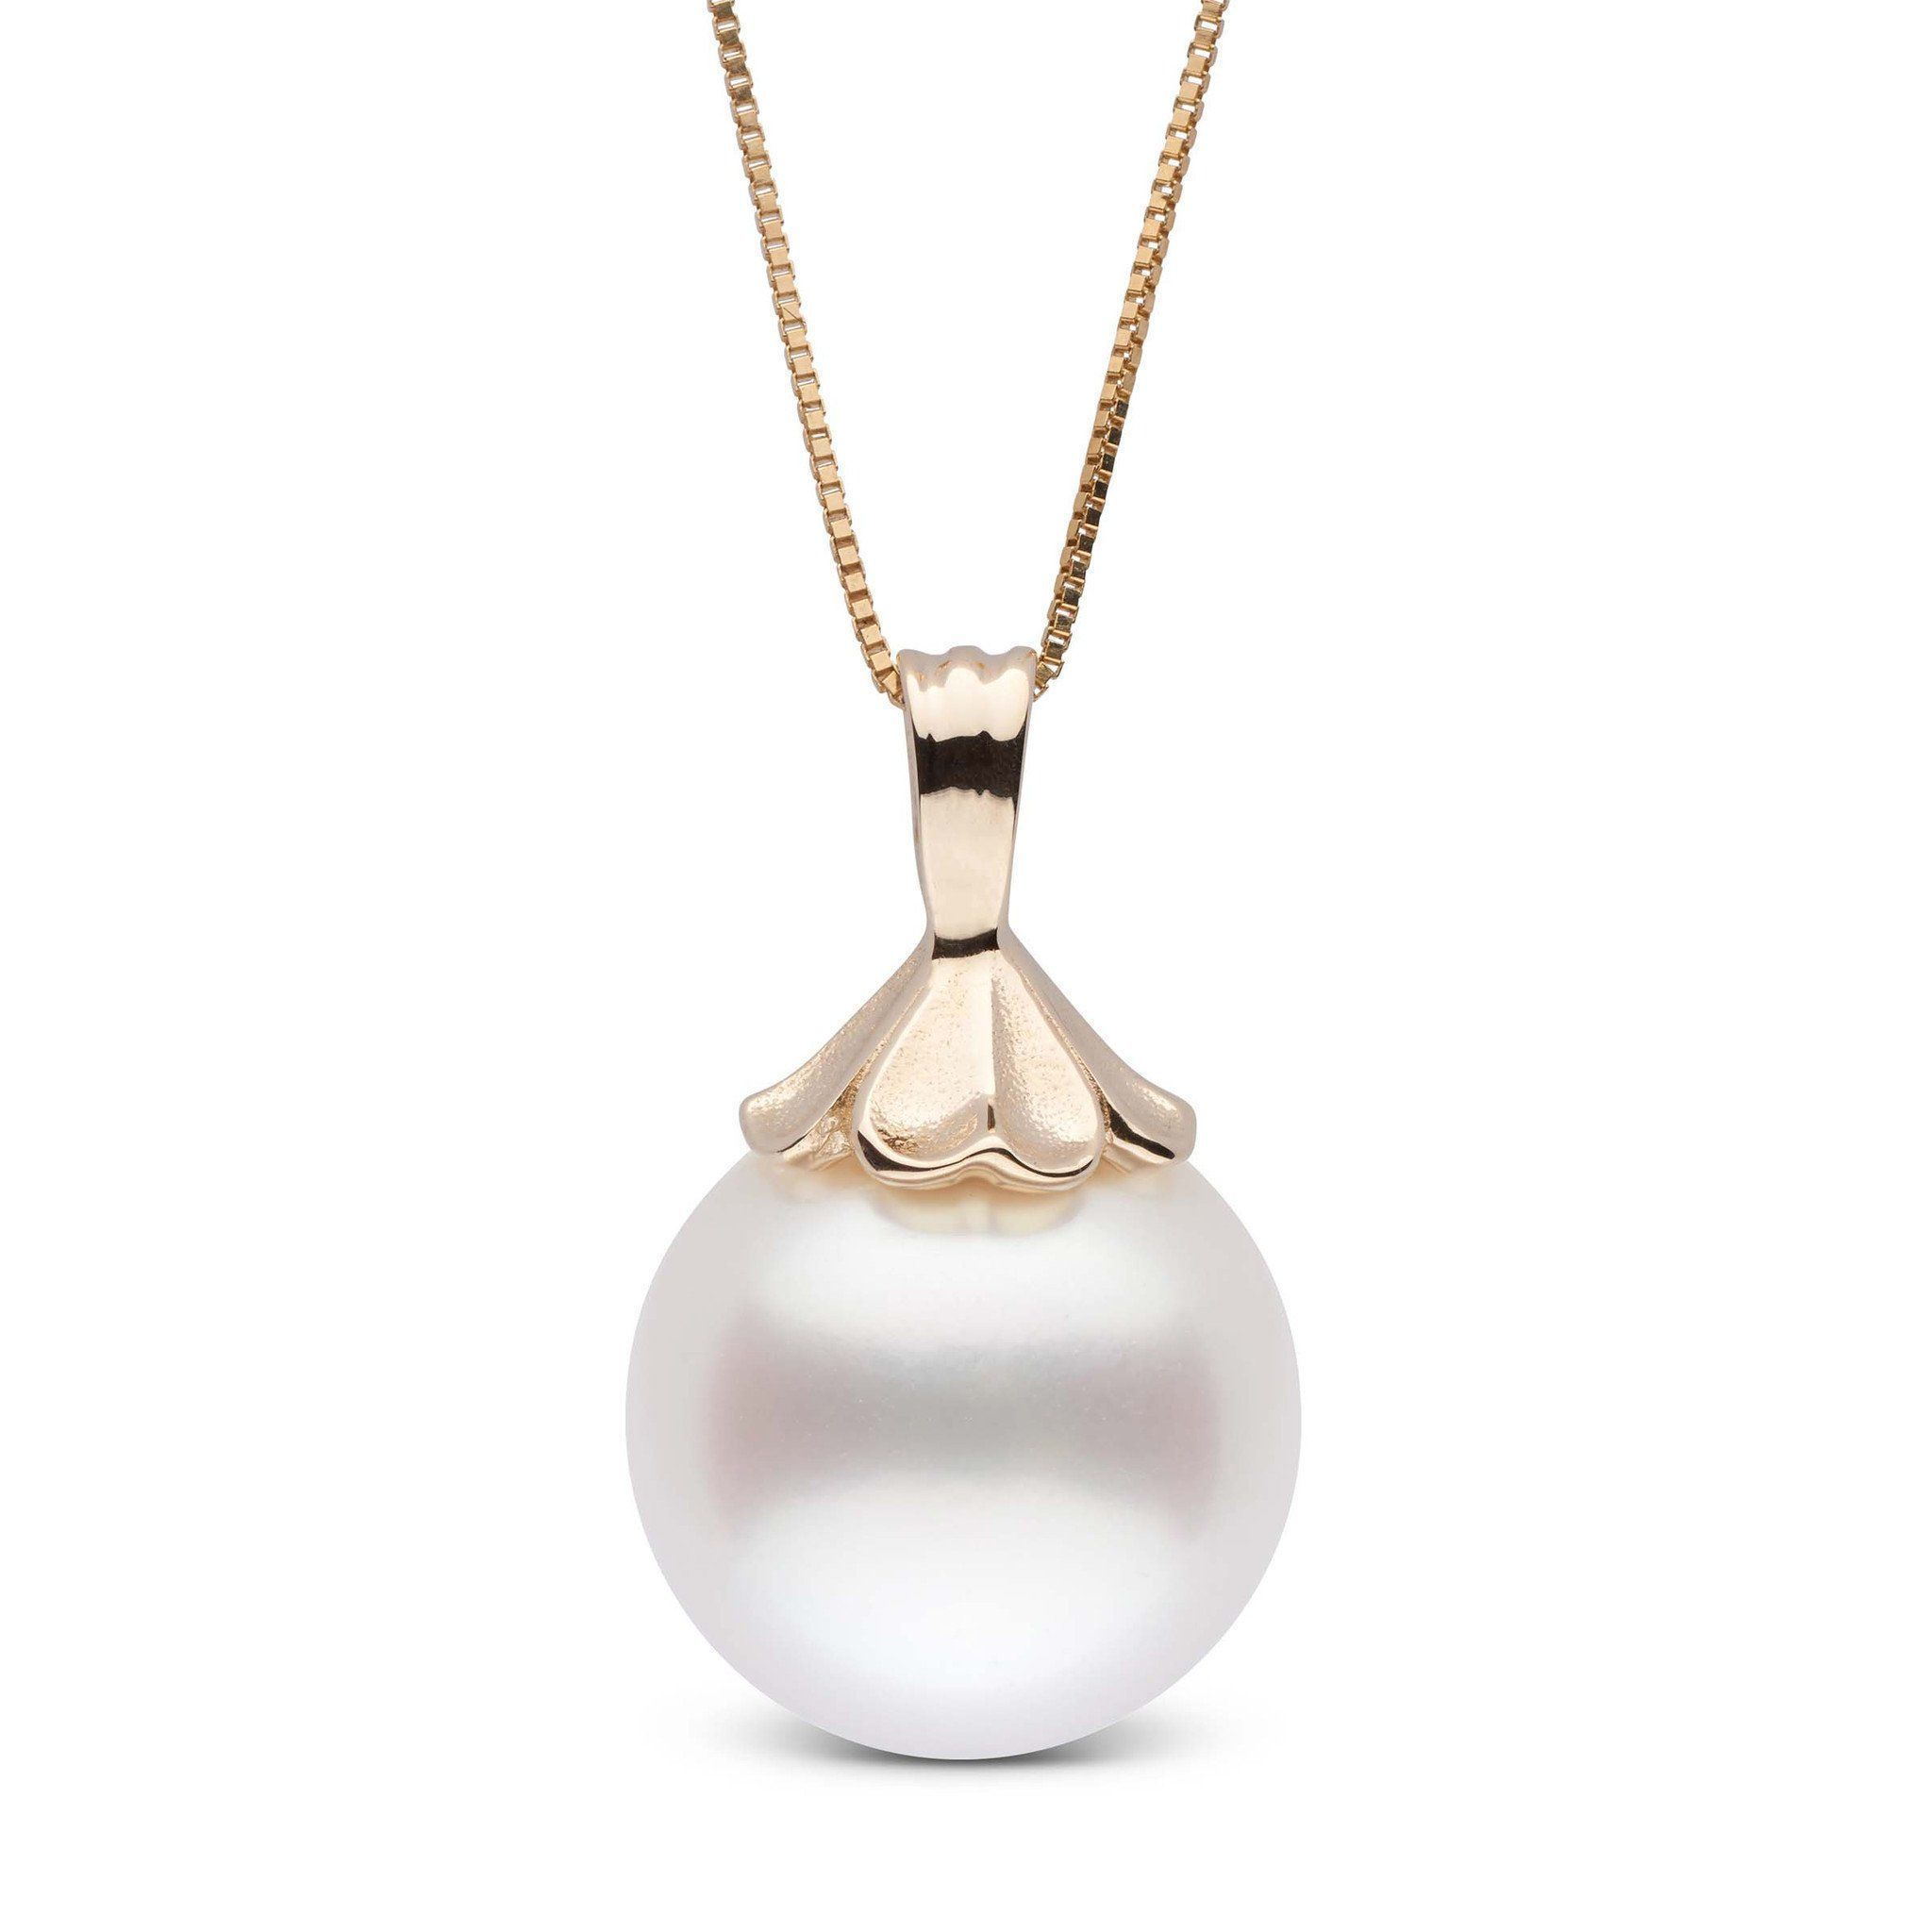 Petal Collection White 13.0-14.0 mm South Sea Pearl Pendant